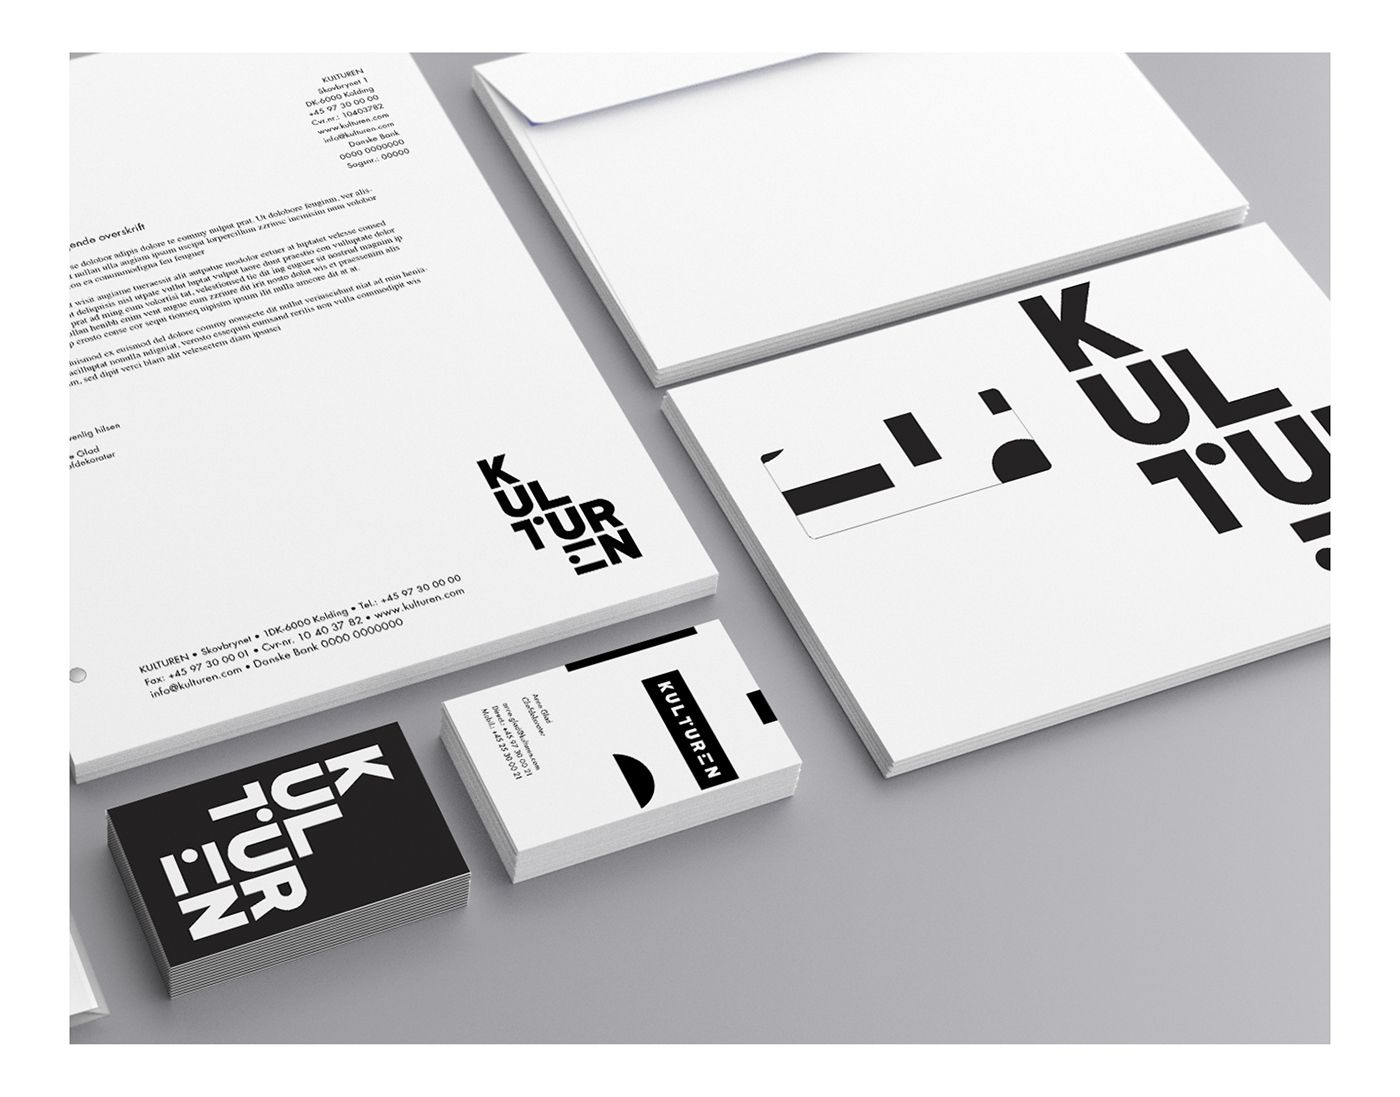 Brand Identity for a Danish theatre and concert hall based in Kolding called KULTUREN.